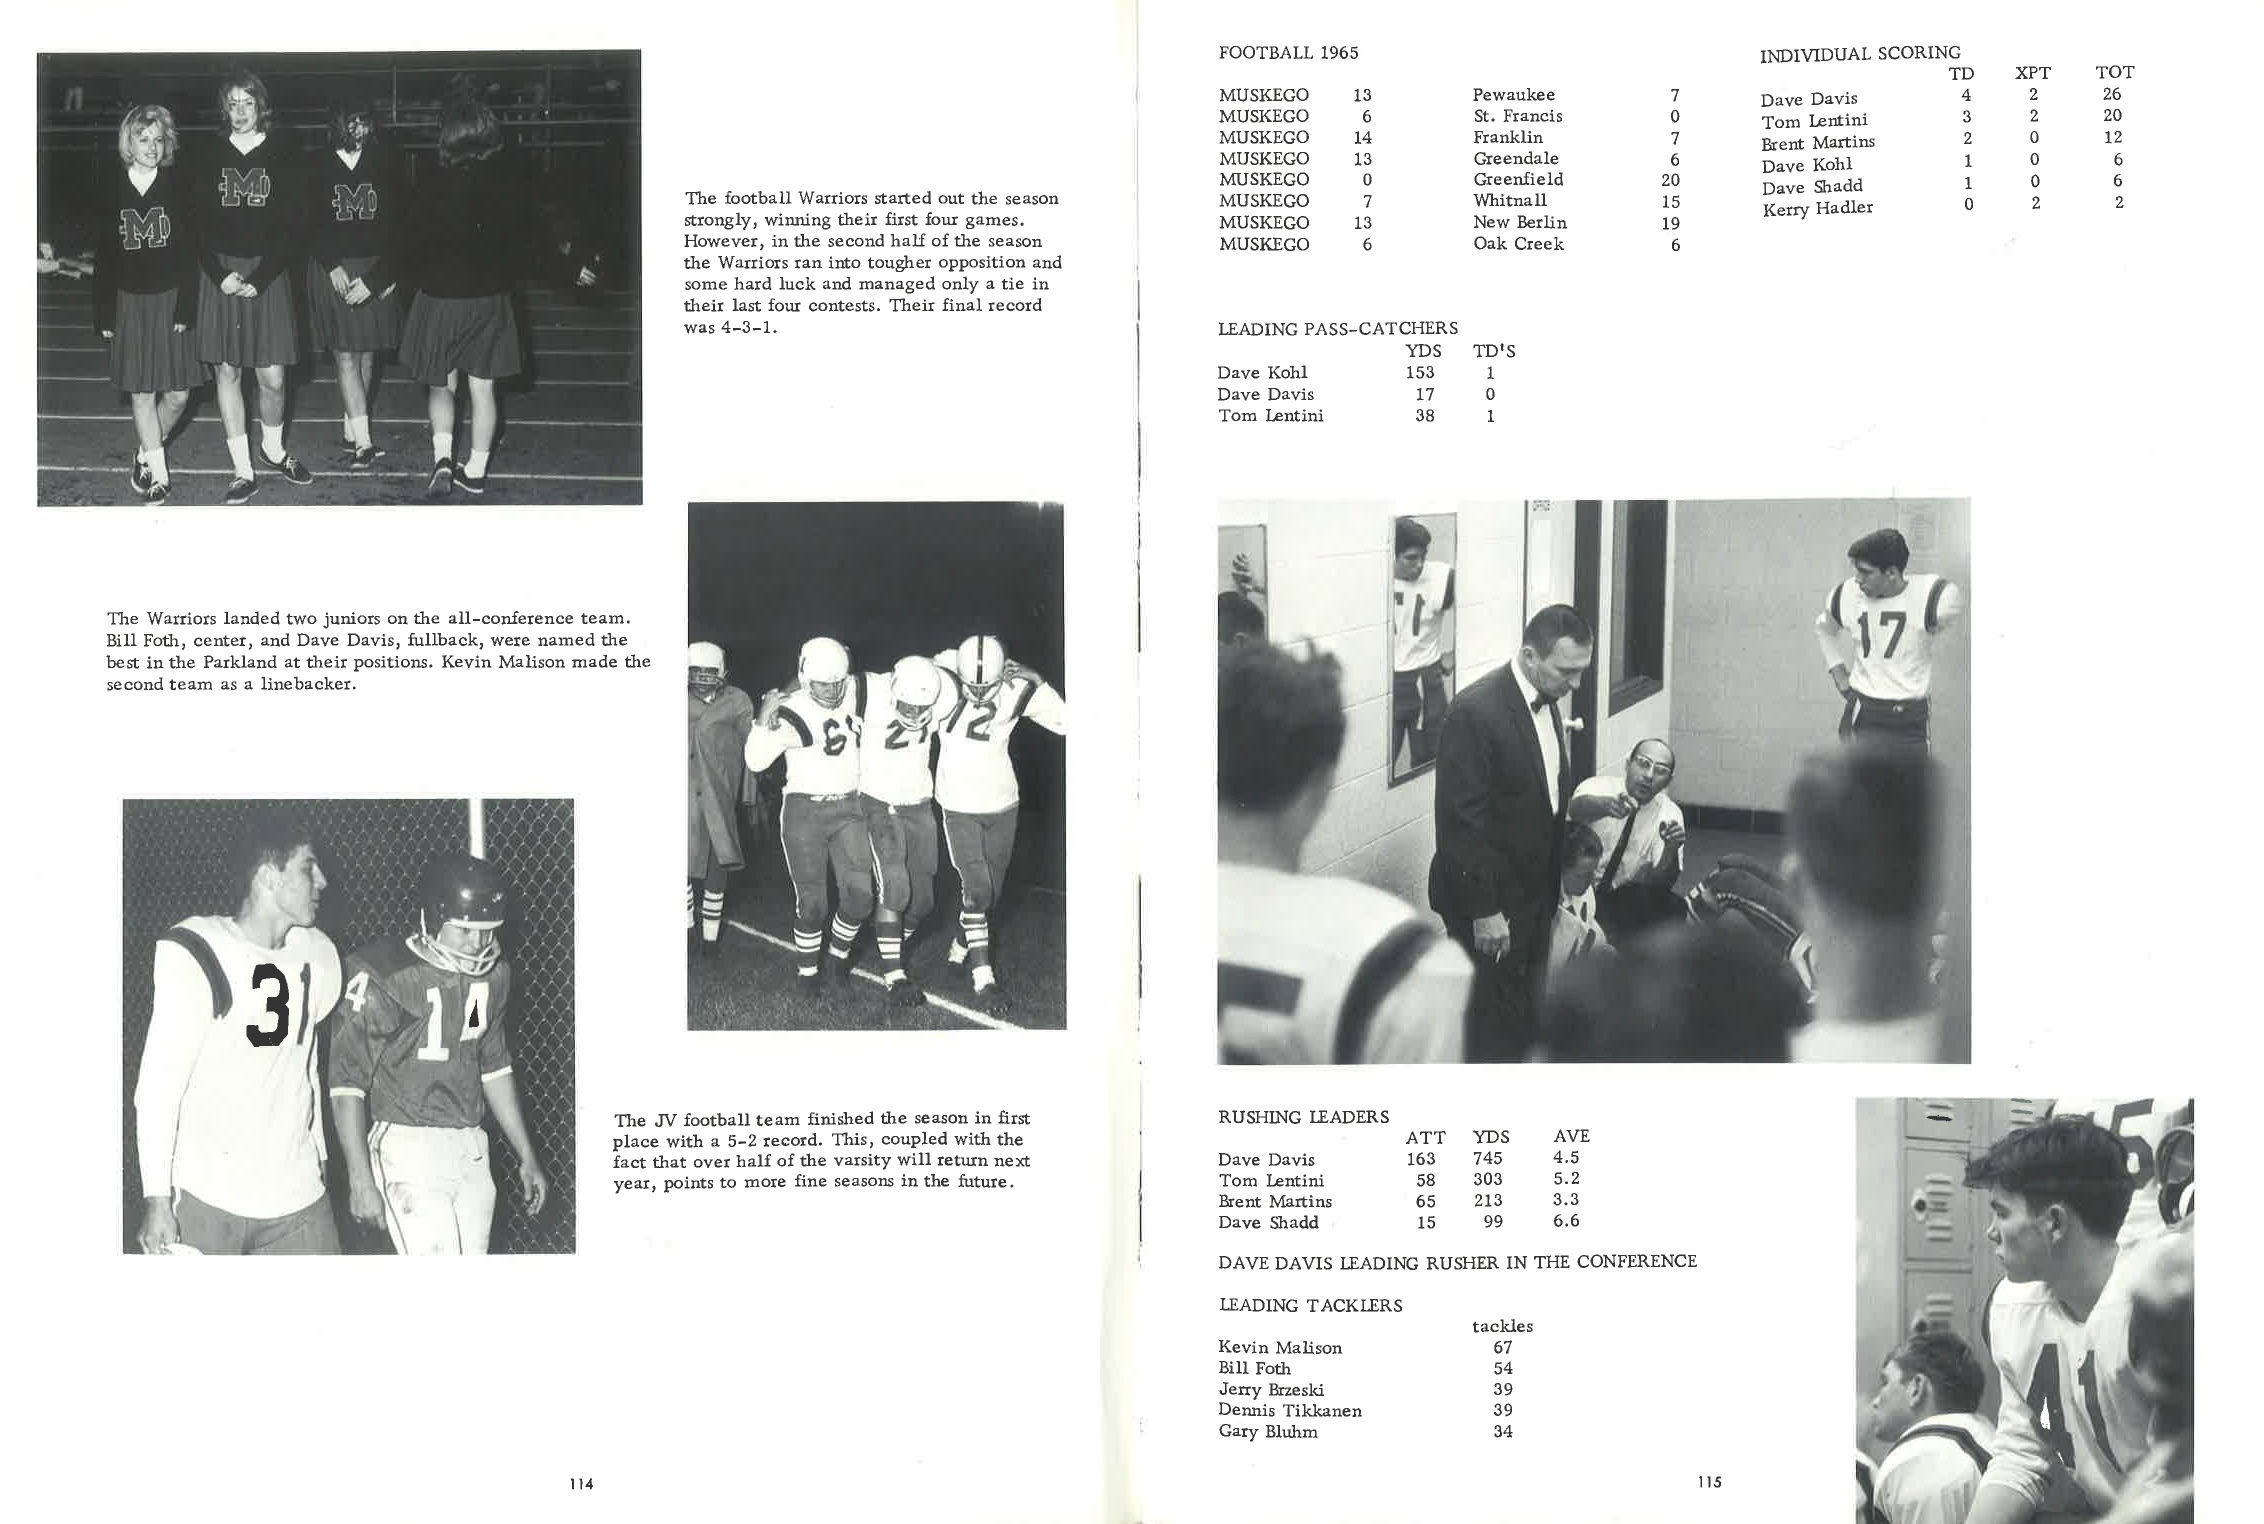 1966_Yearbook_58.jpg